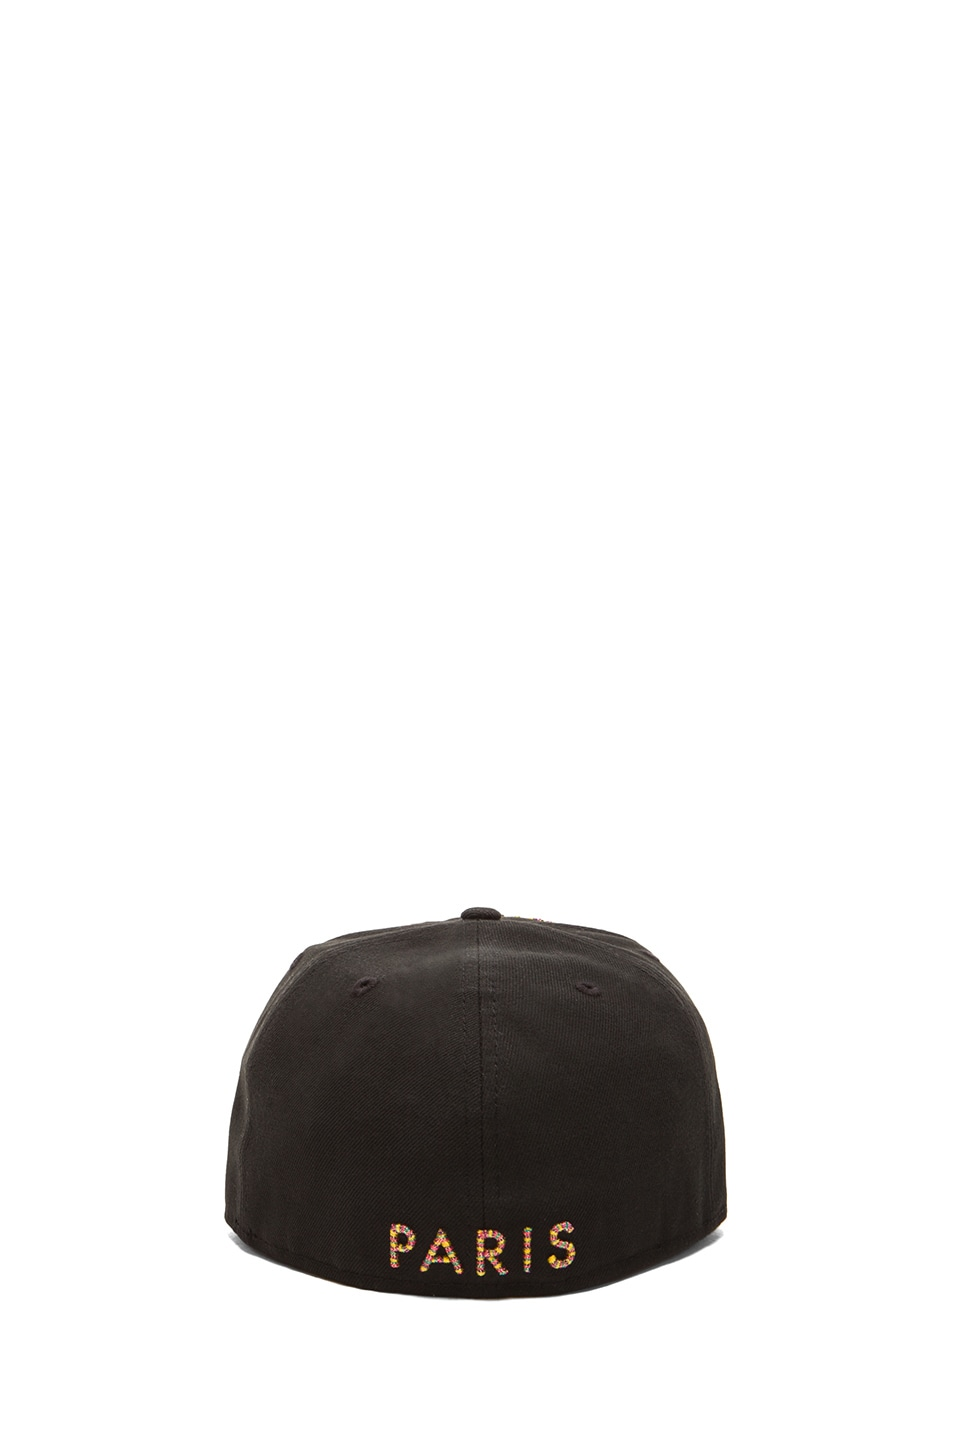 bbae1ec509f Image 4 of Kenzo x New Era Monster Embroidery Cap in Black